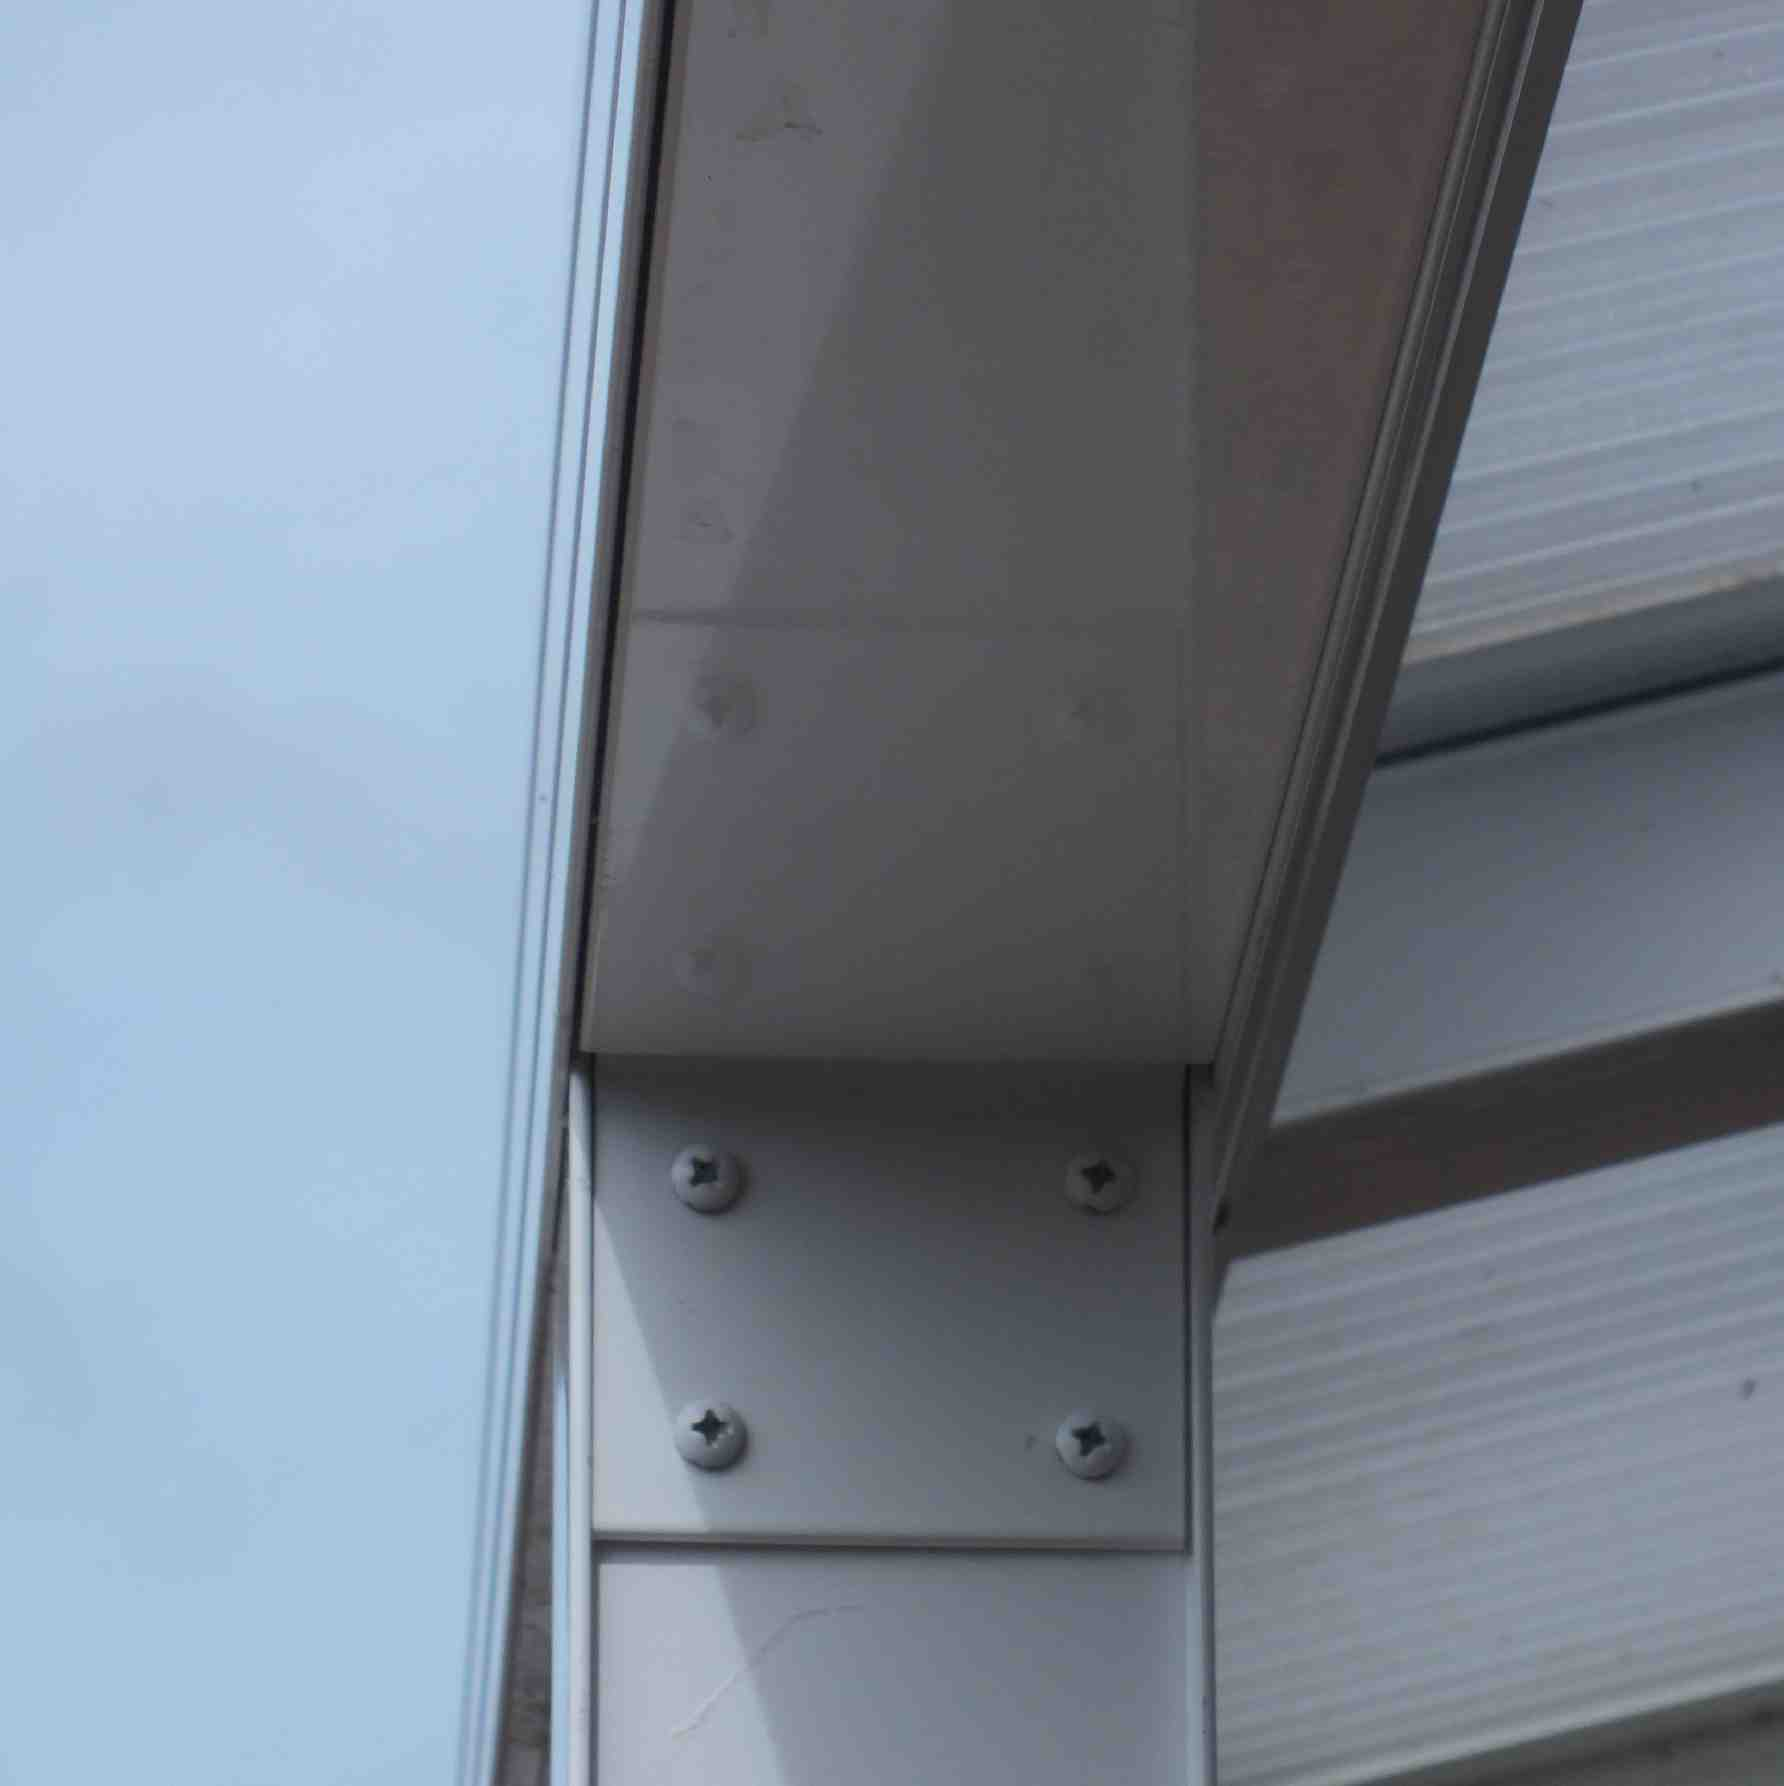 Affordable Omega Verandah with 16mm Polycarbonate Glazing - 2.8m (W) x 4.0m(P), (2) Supporting Posts